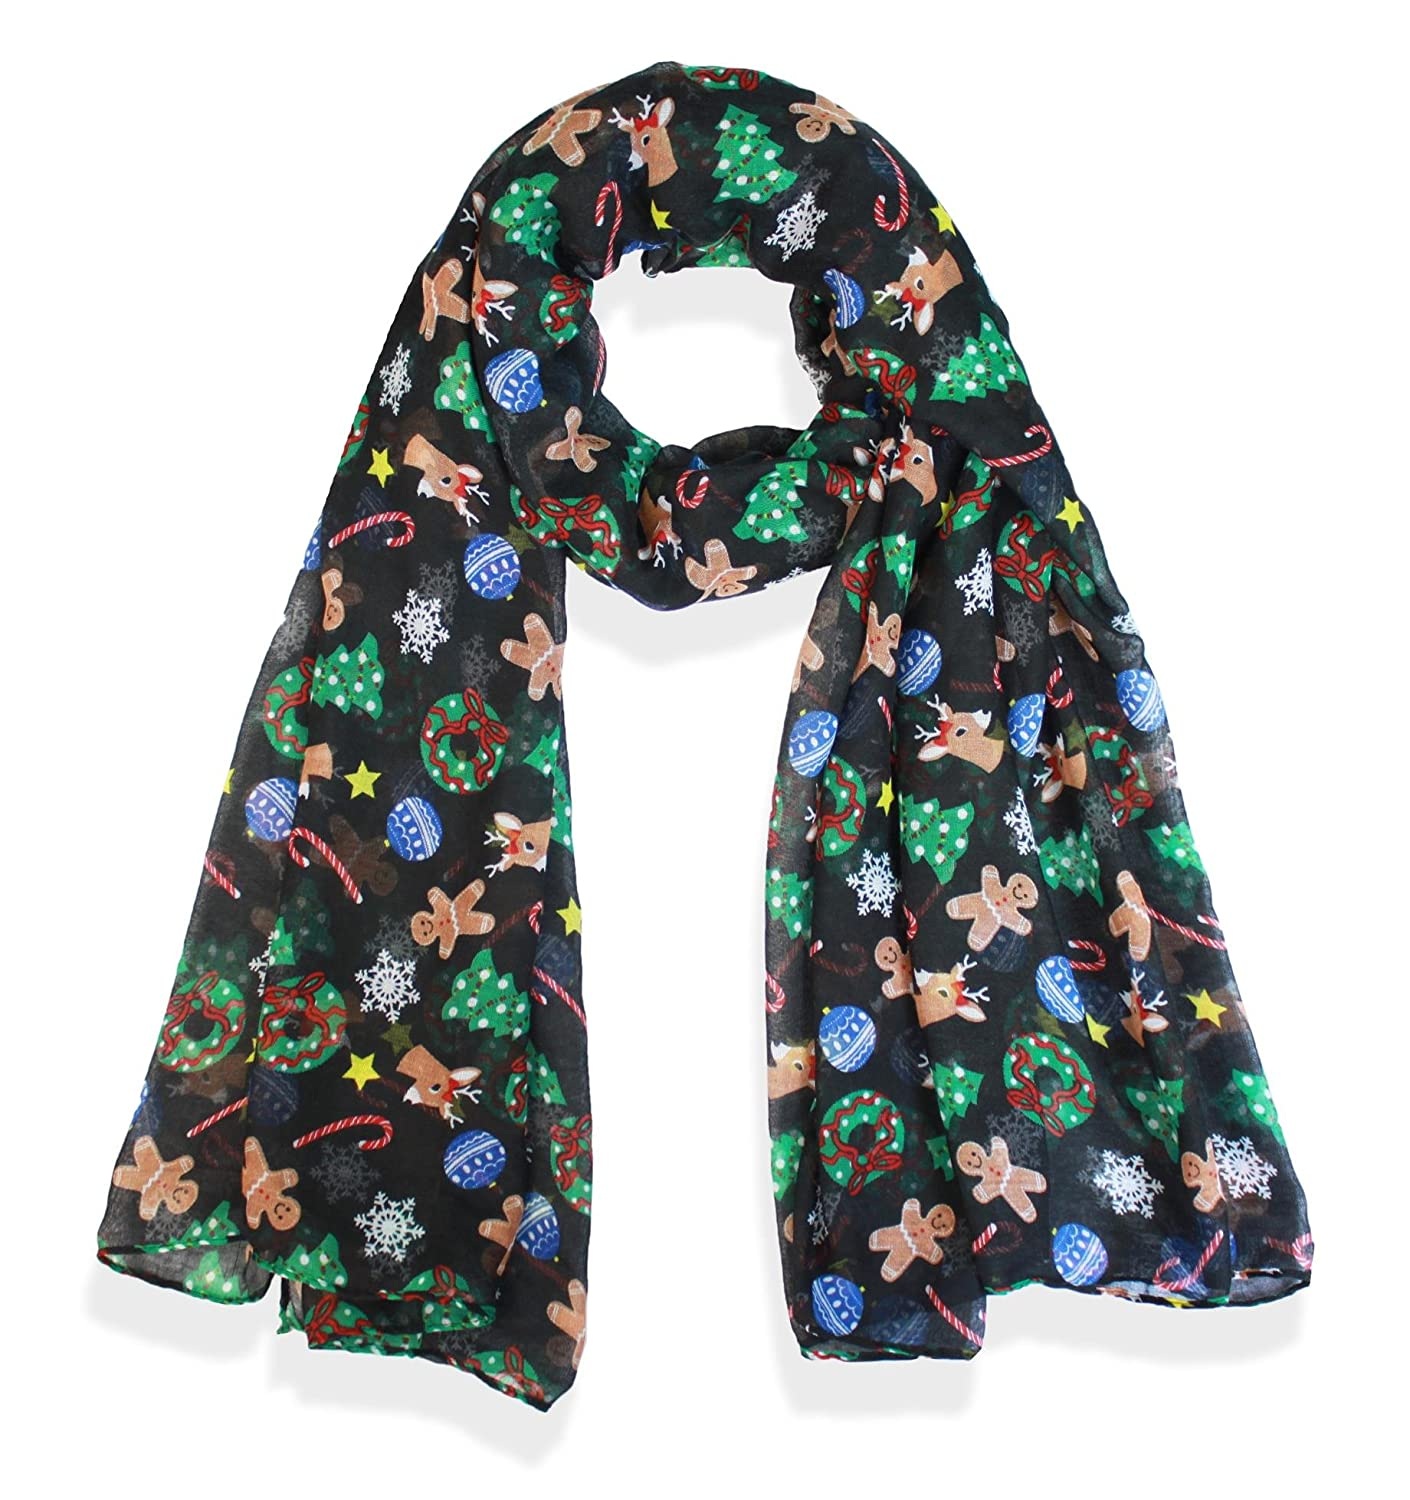 Candy Cane Print Women's Scarf Christmas Gift Lightweight